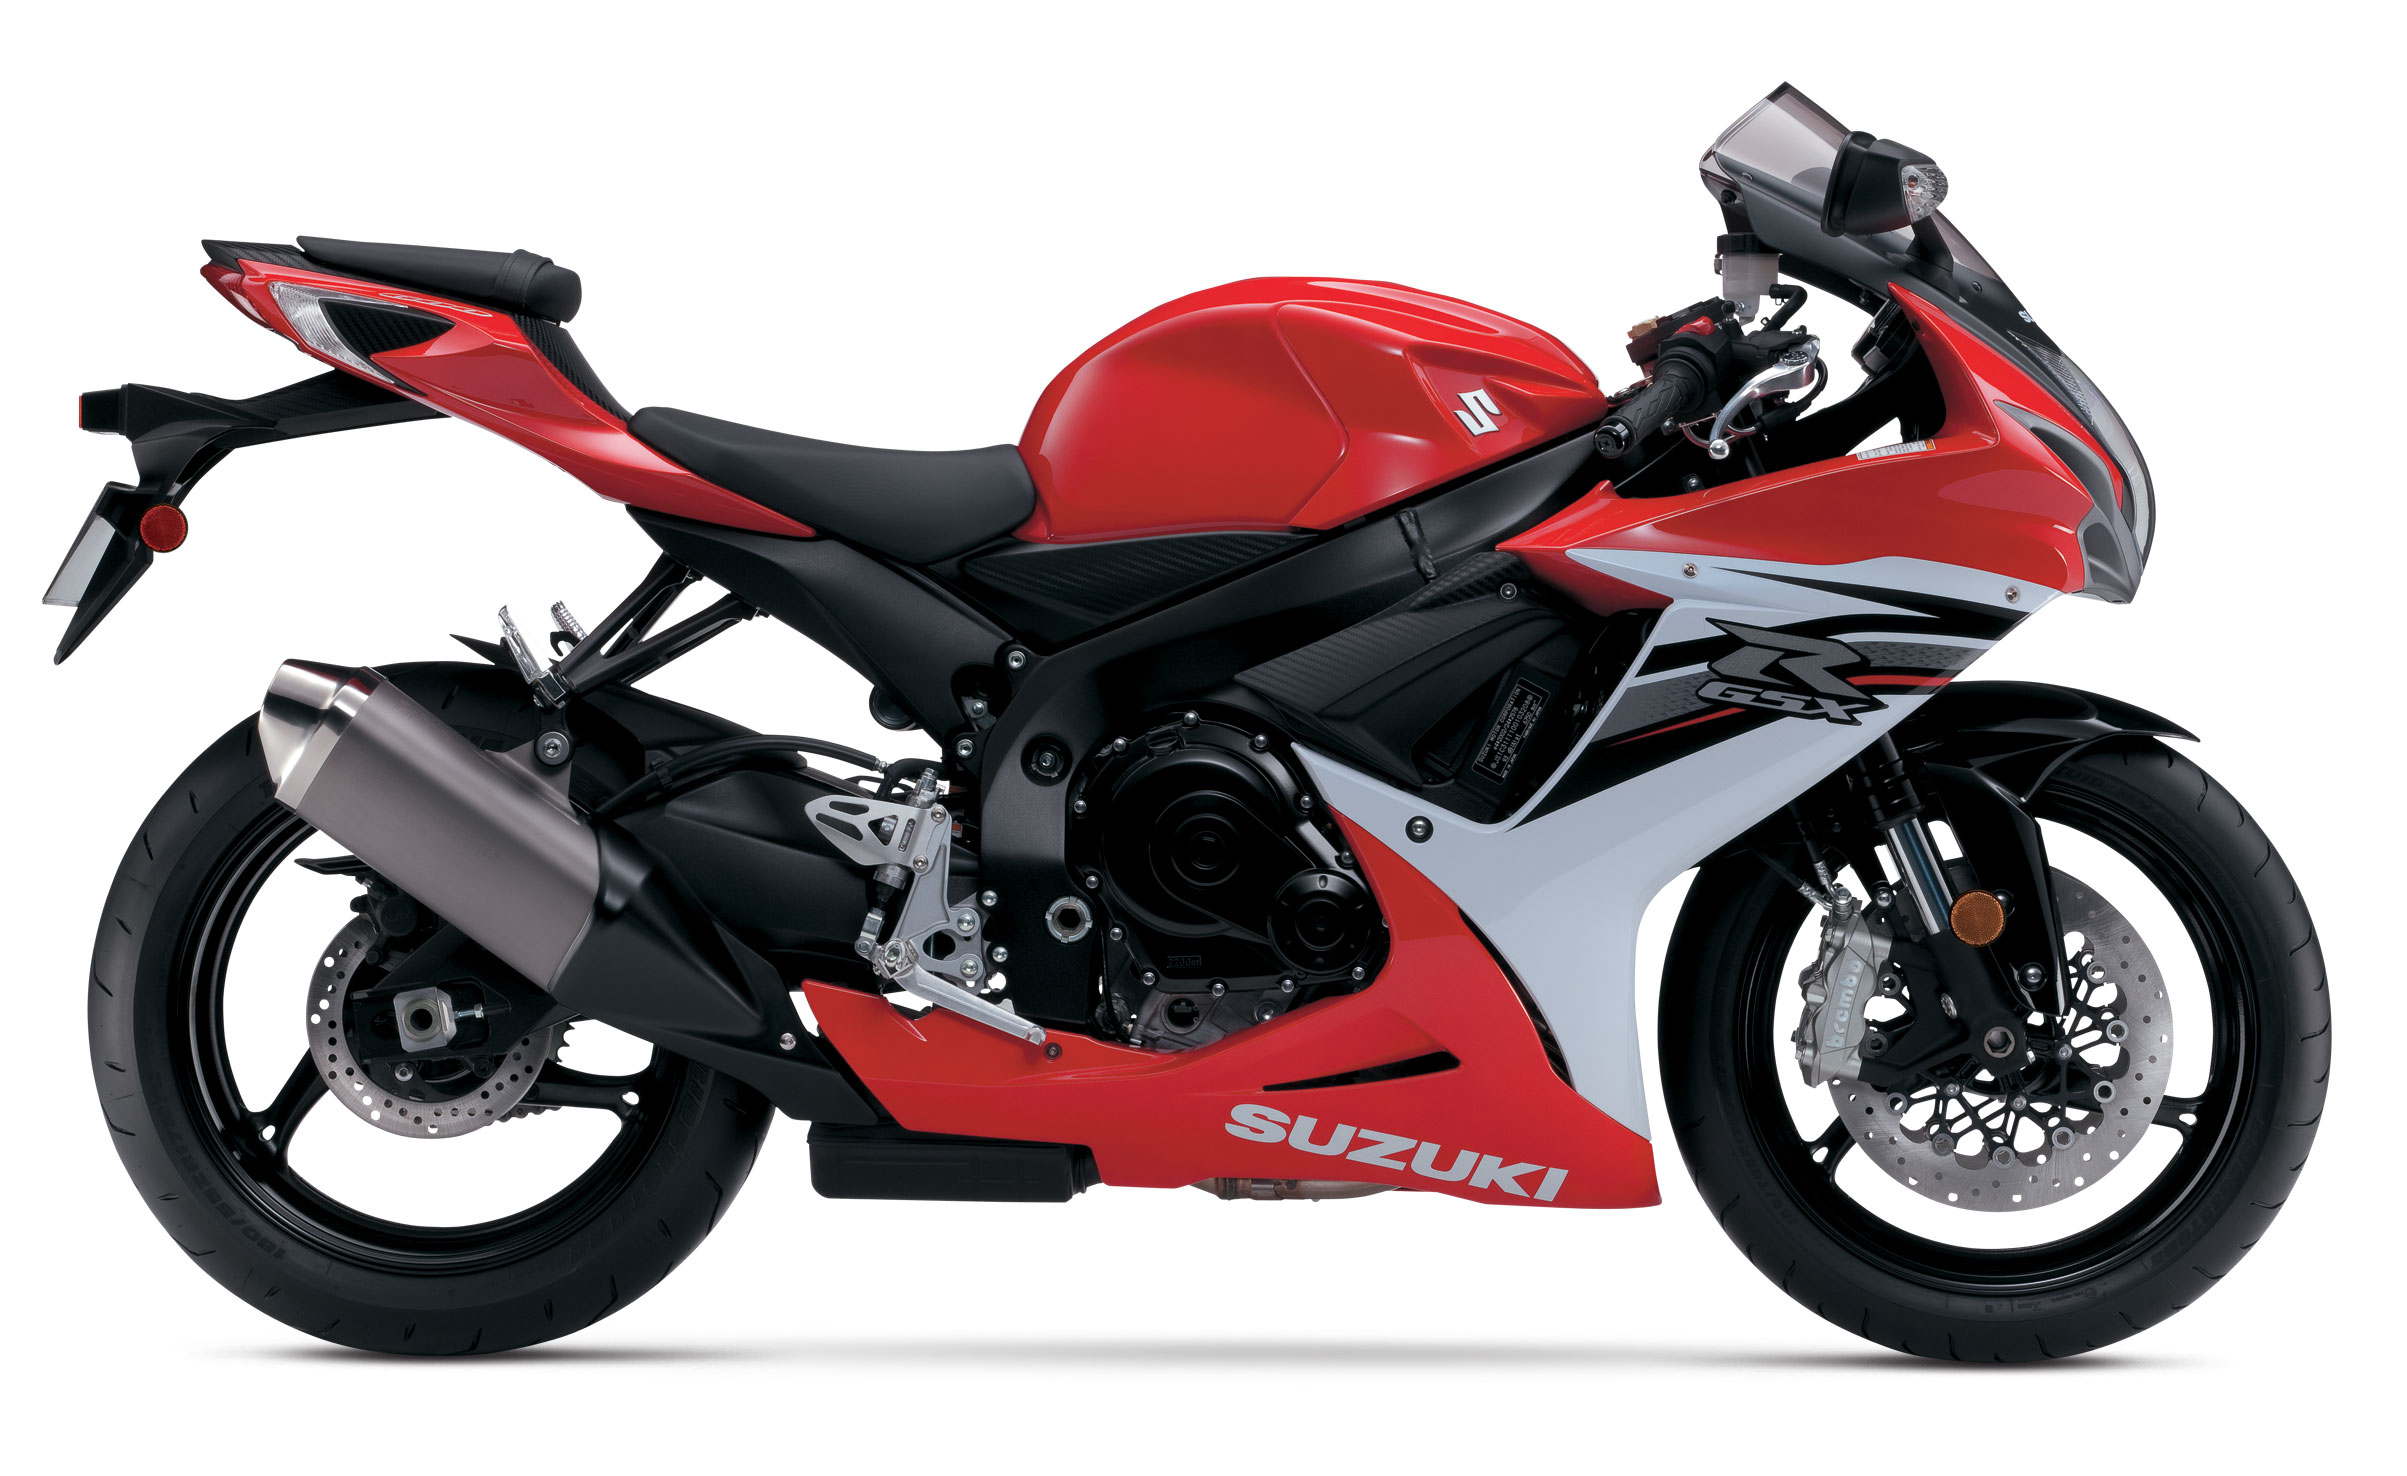 suzuki gsx r 600 2013 datasheet service manual and datasheet for suzuki motorcycles. Black Bedroom Furniture Sets. Home Design Ideas